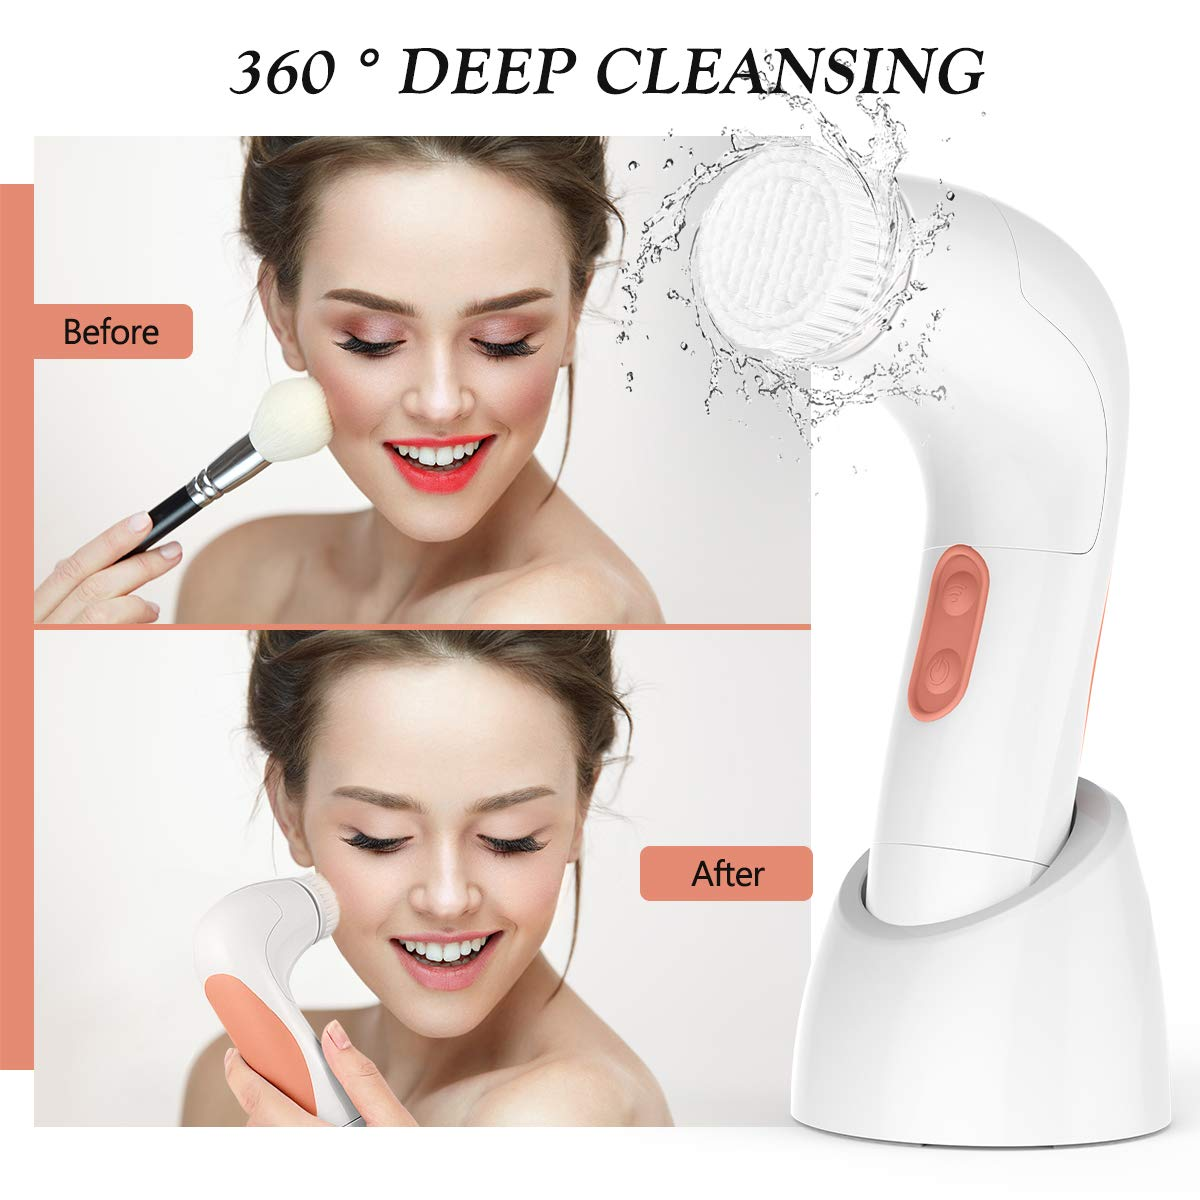 Facial Brush Waterproof Body Facial Cleansing Brush Spin Brush (Nude Pink)